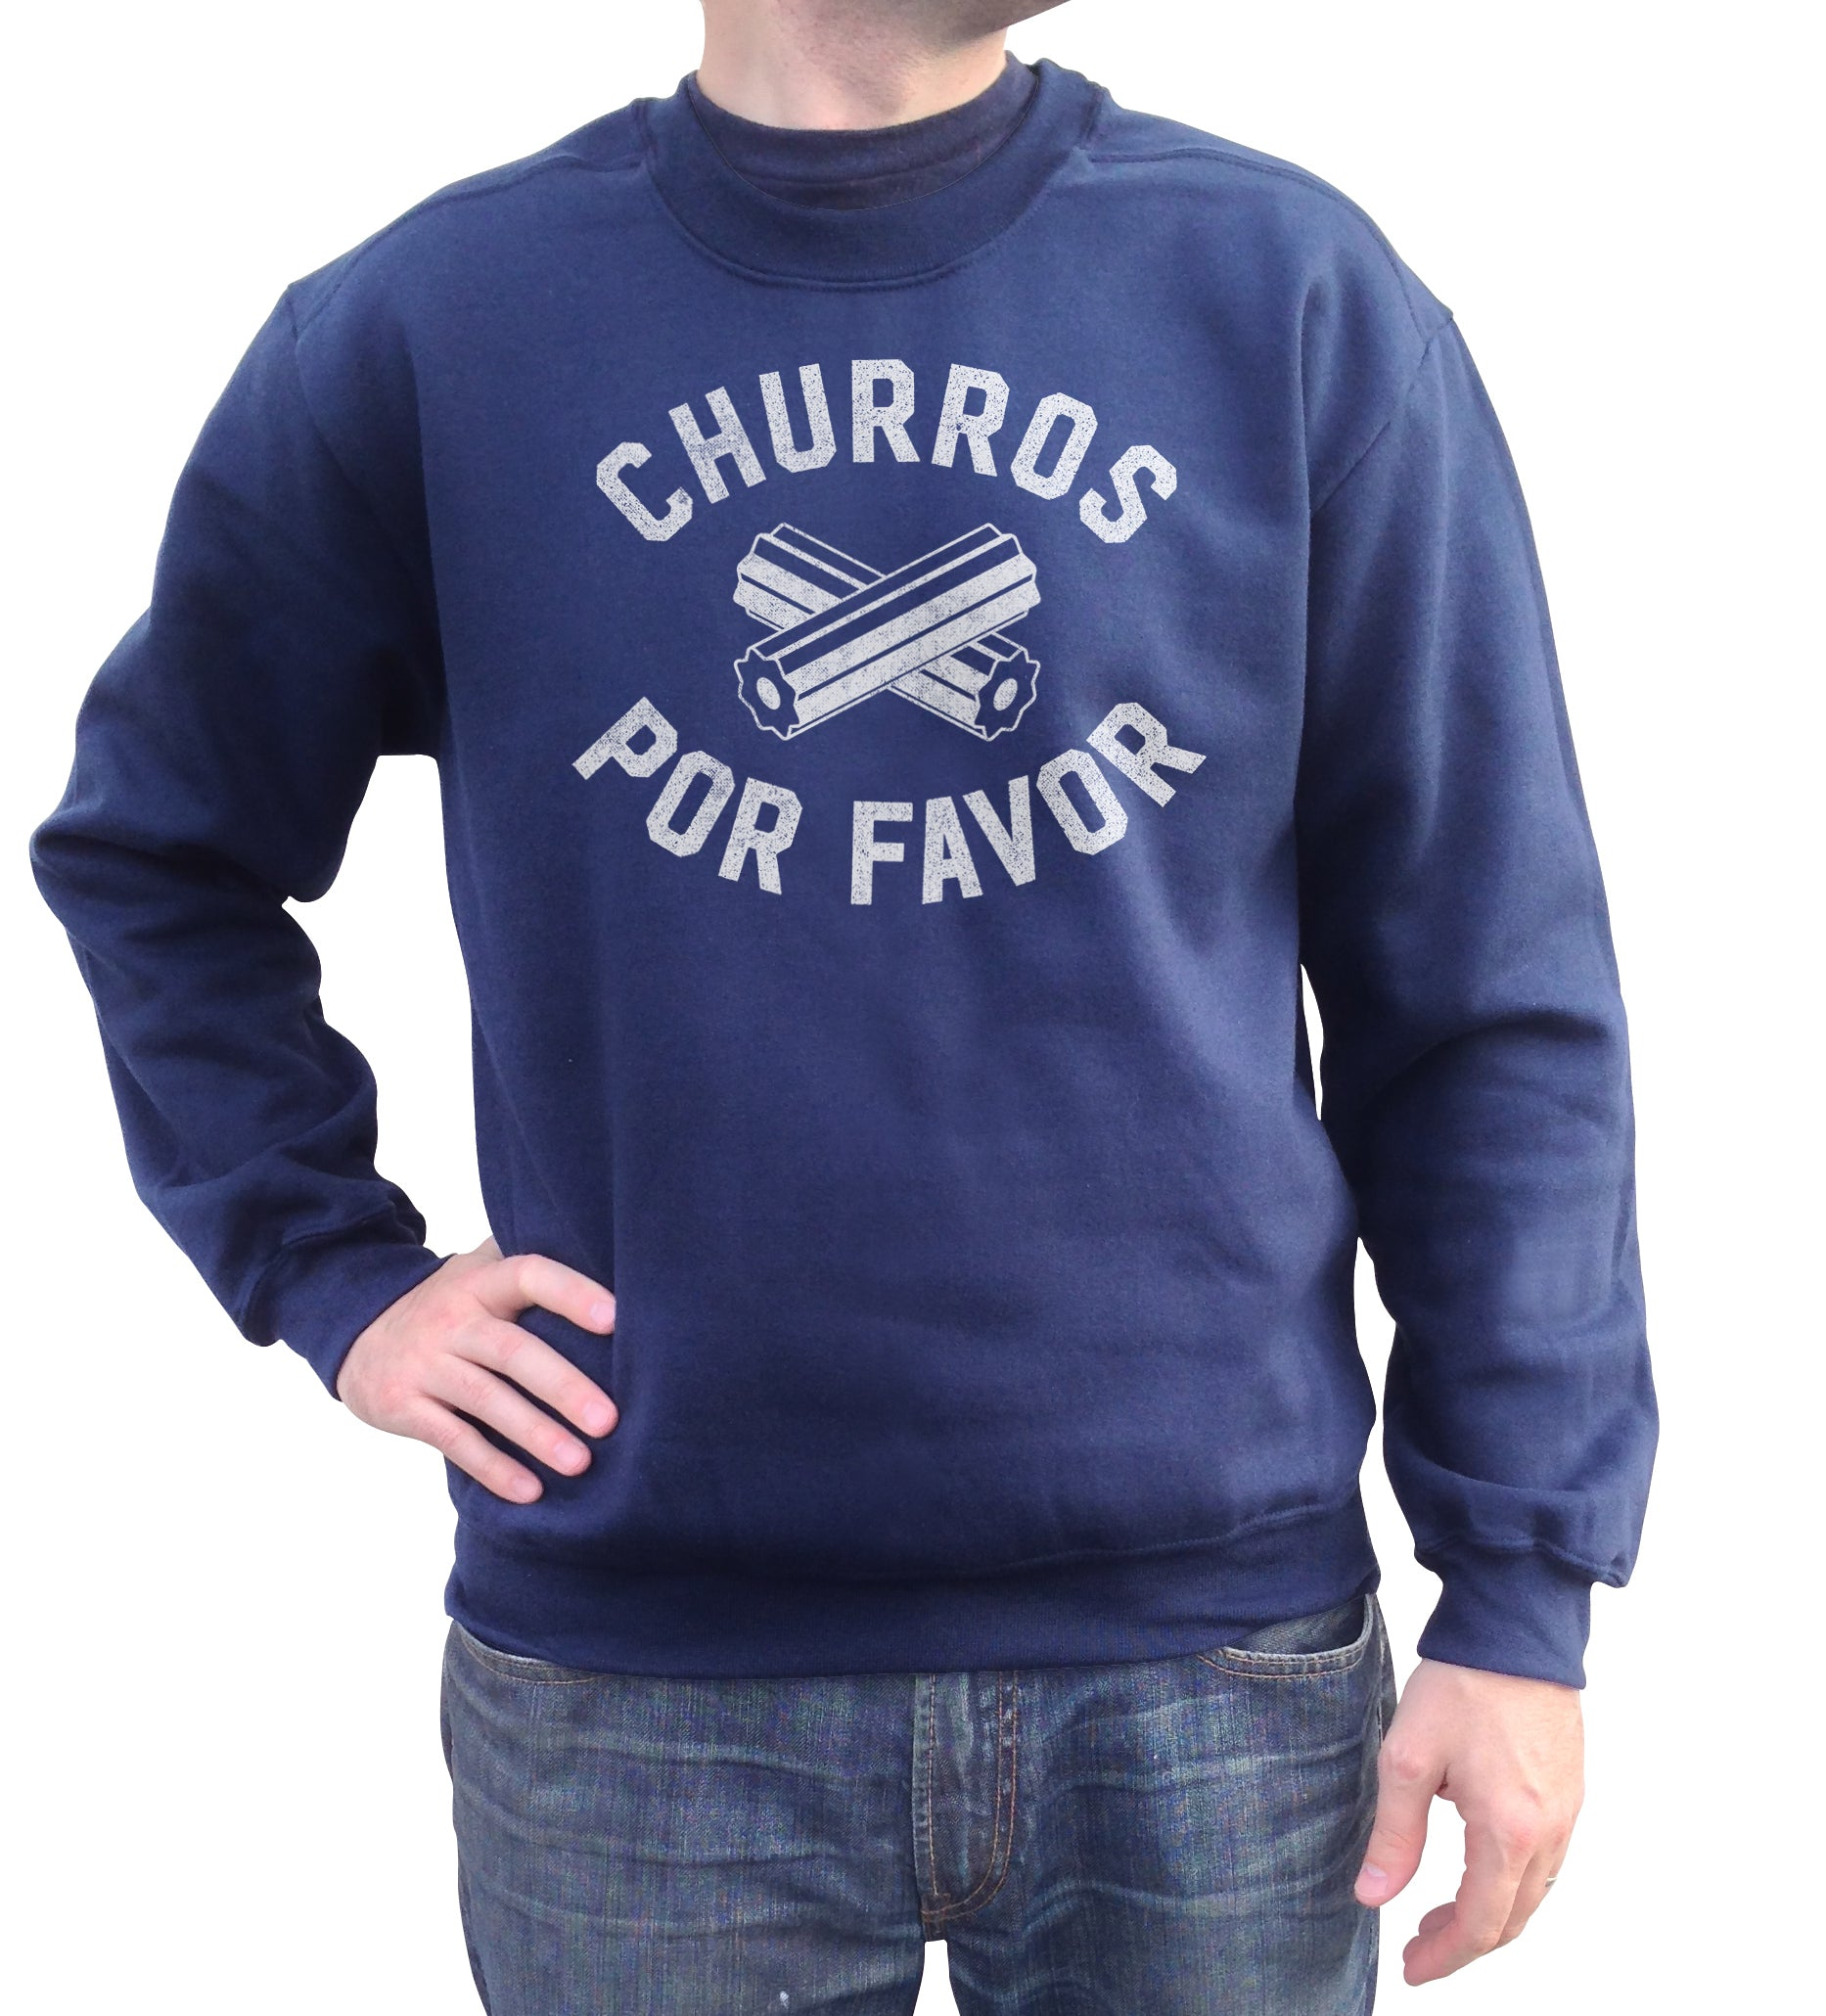 Unisex Churros Por Favor Sweatshirt - Churro Shirt